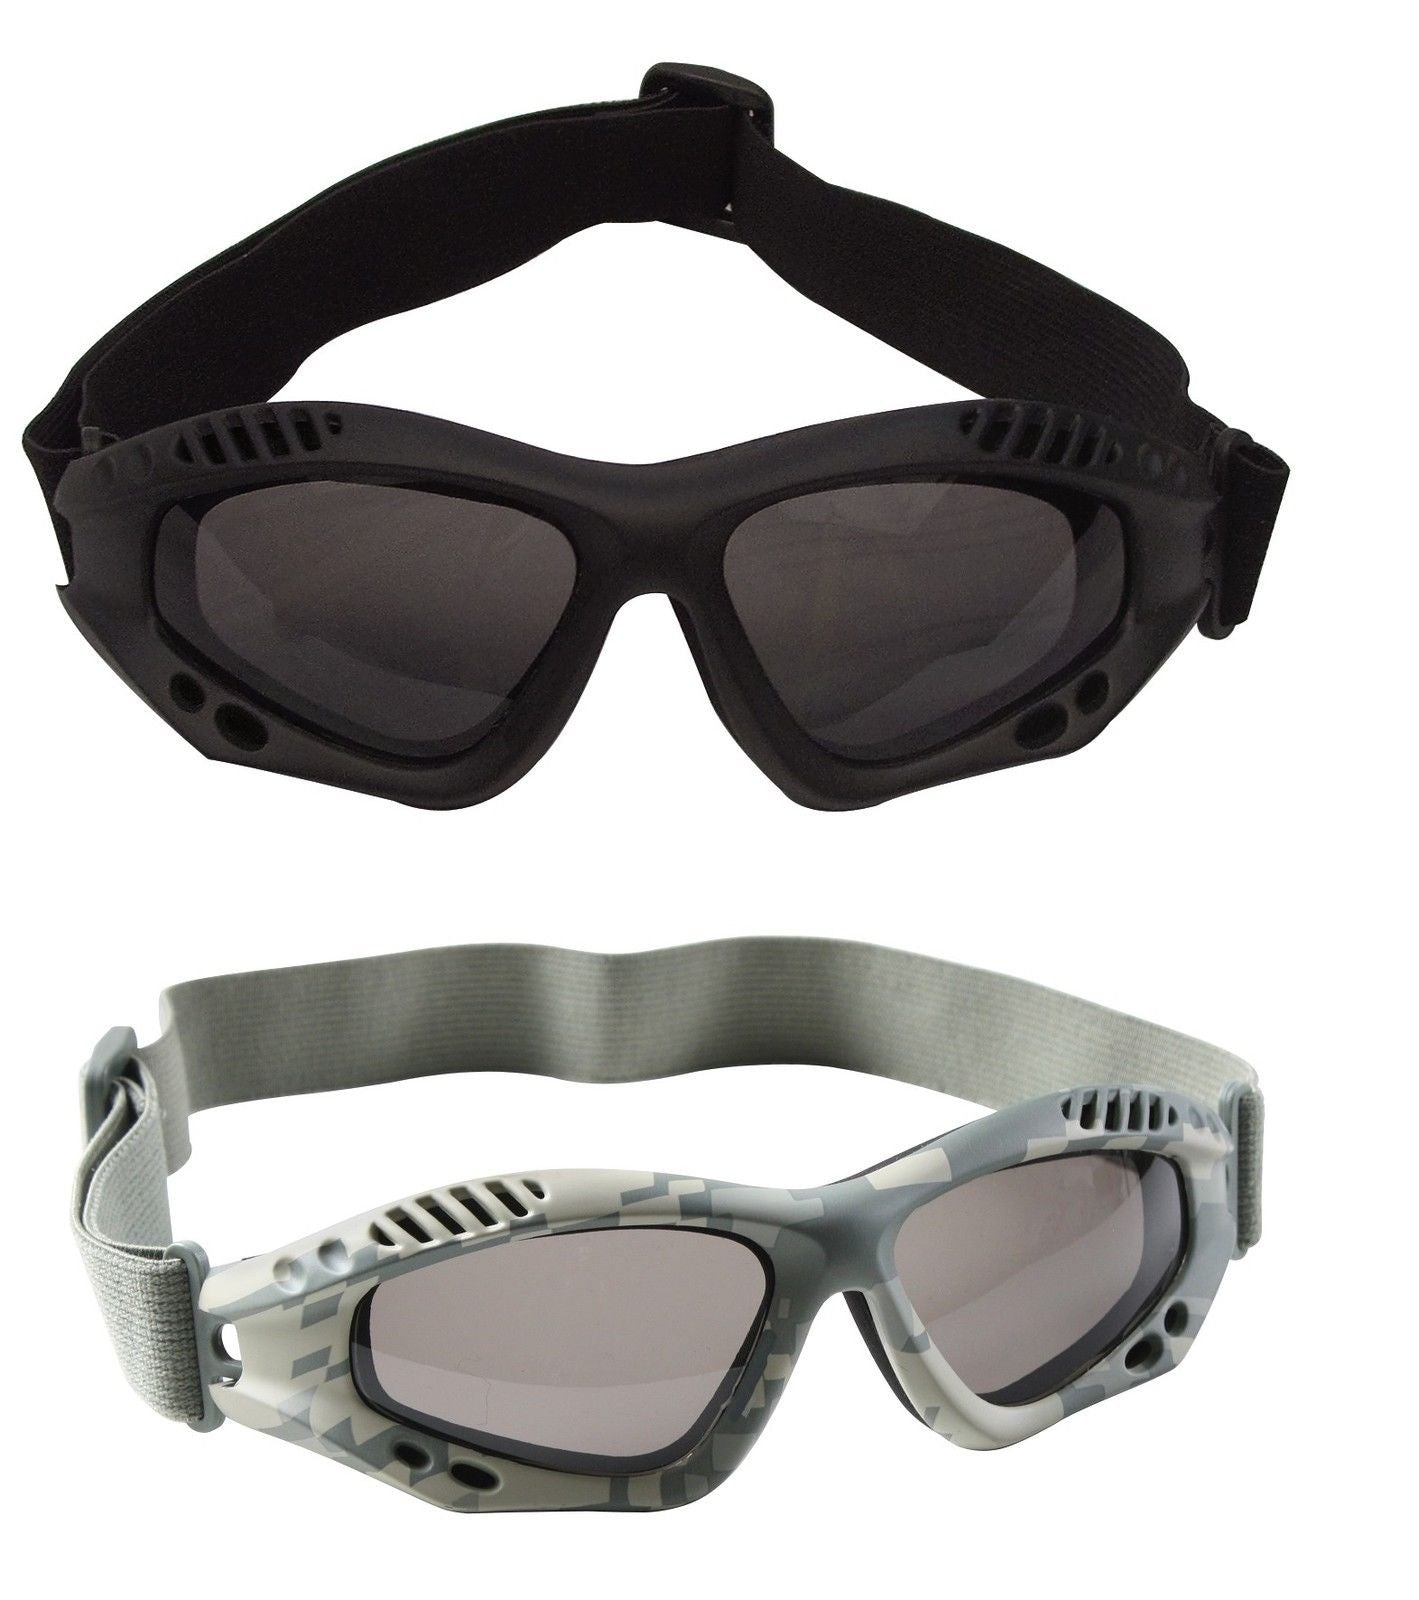 3 Pack Set Anytime Packall Weather Protective Motorcycle Riding Goggle Glasses